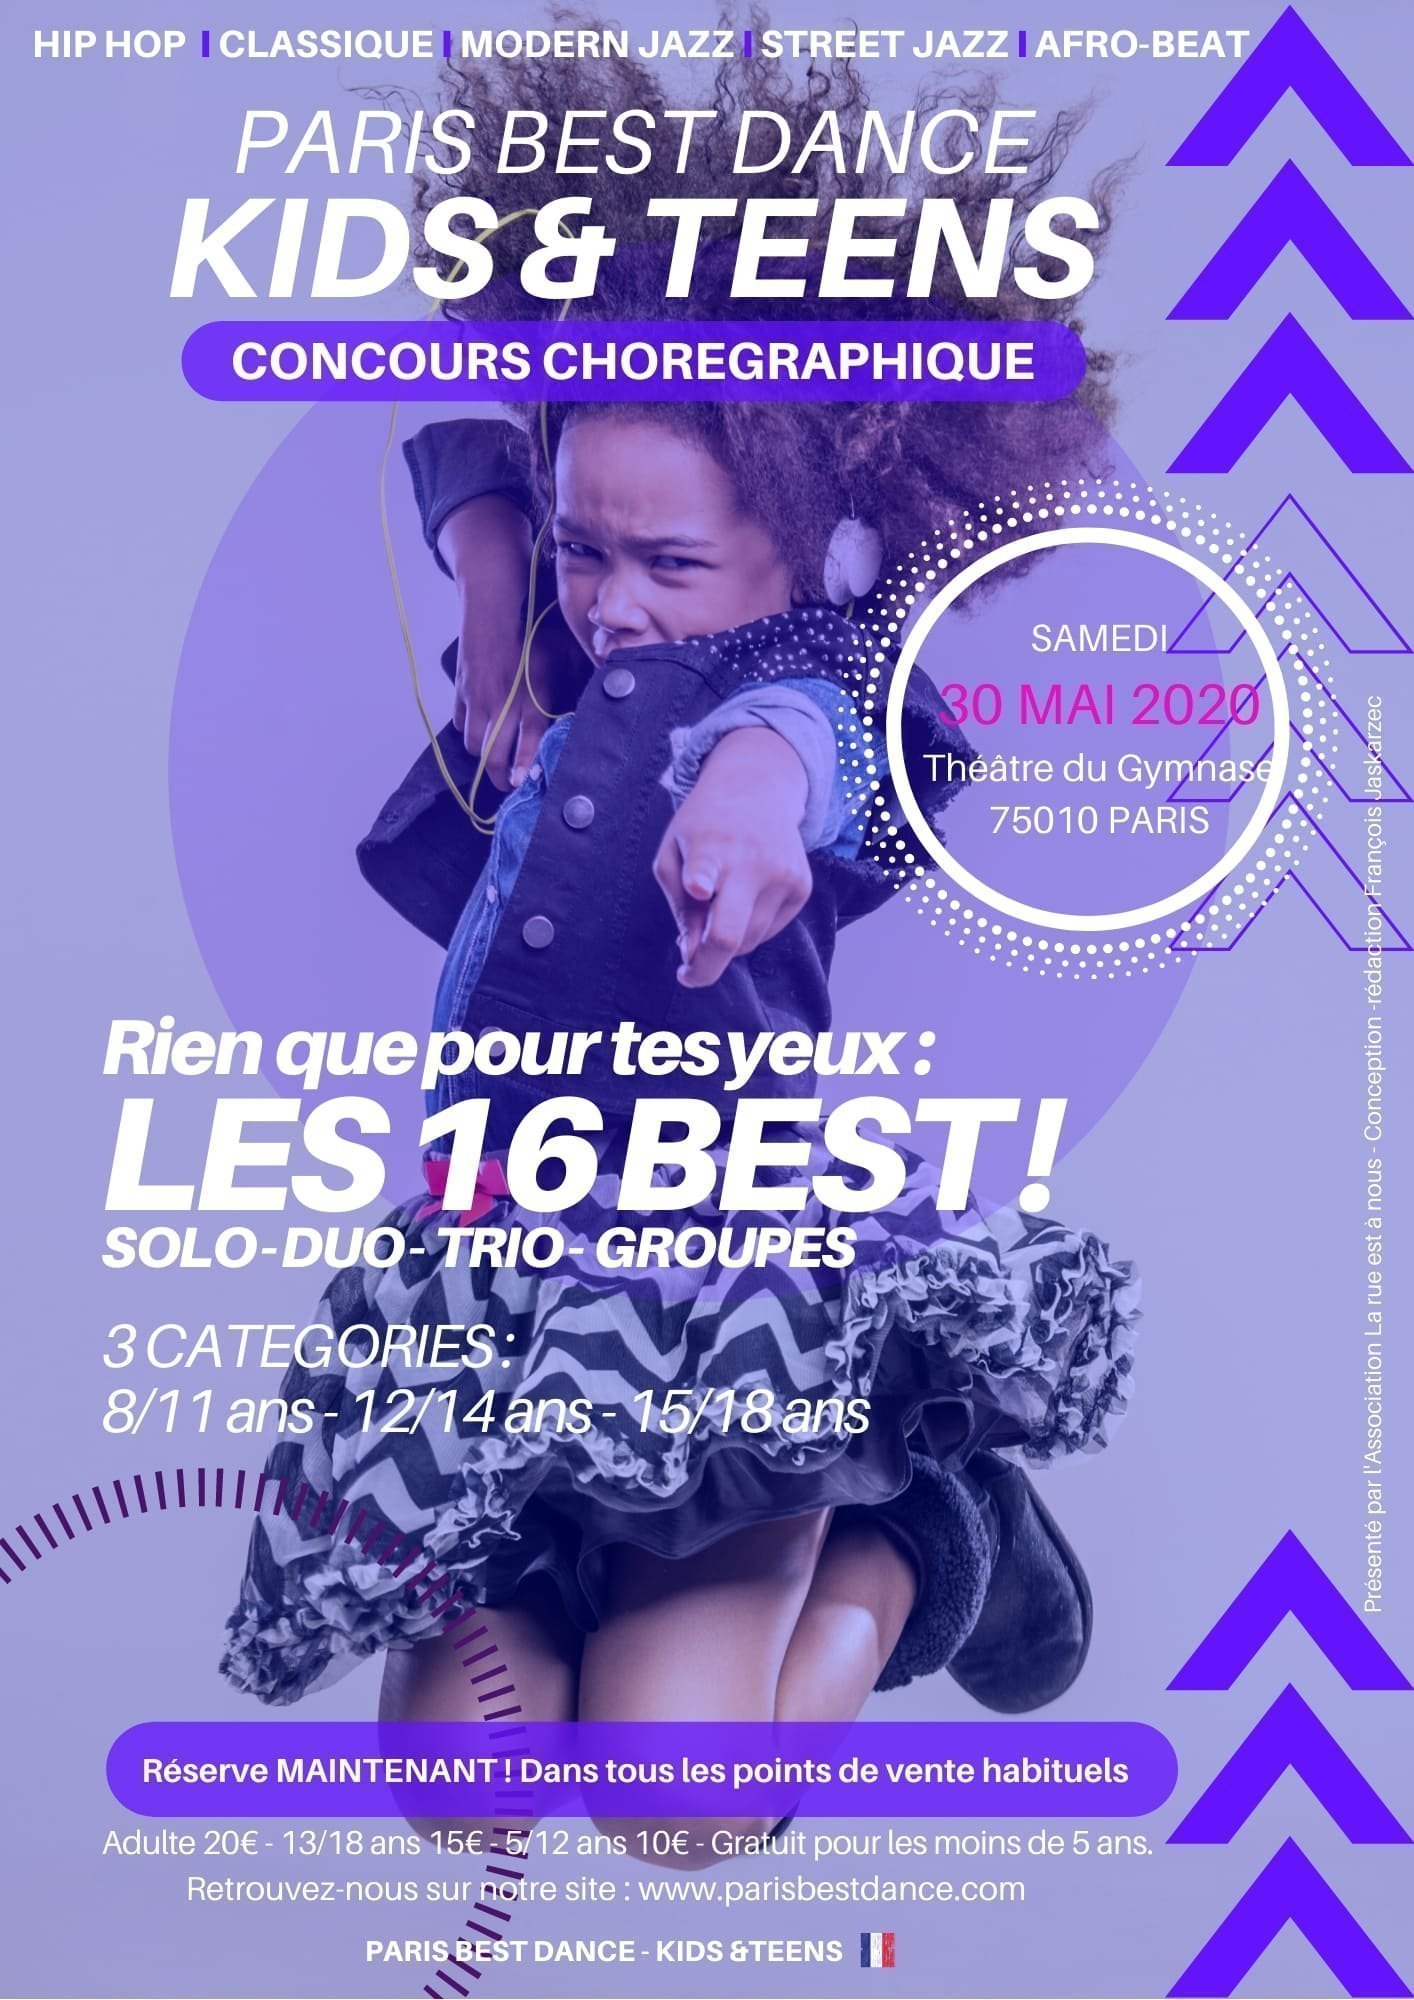 Paris Best Dance - Kids & Teens I Choreographic competition